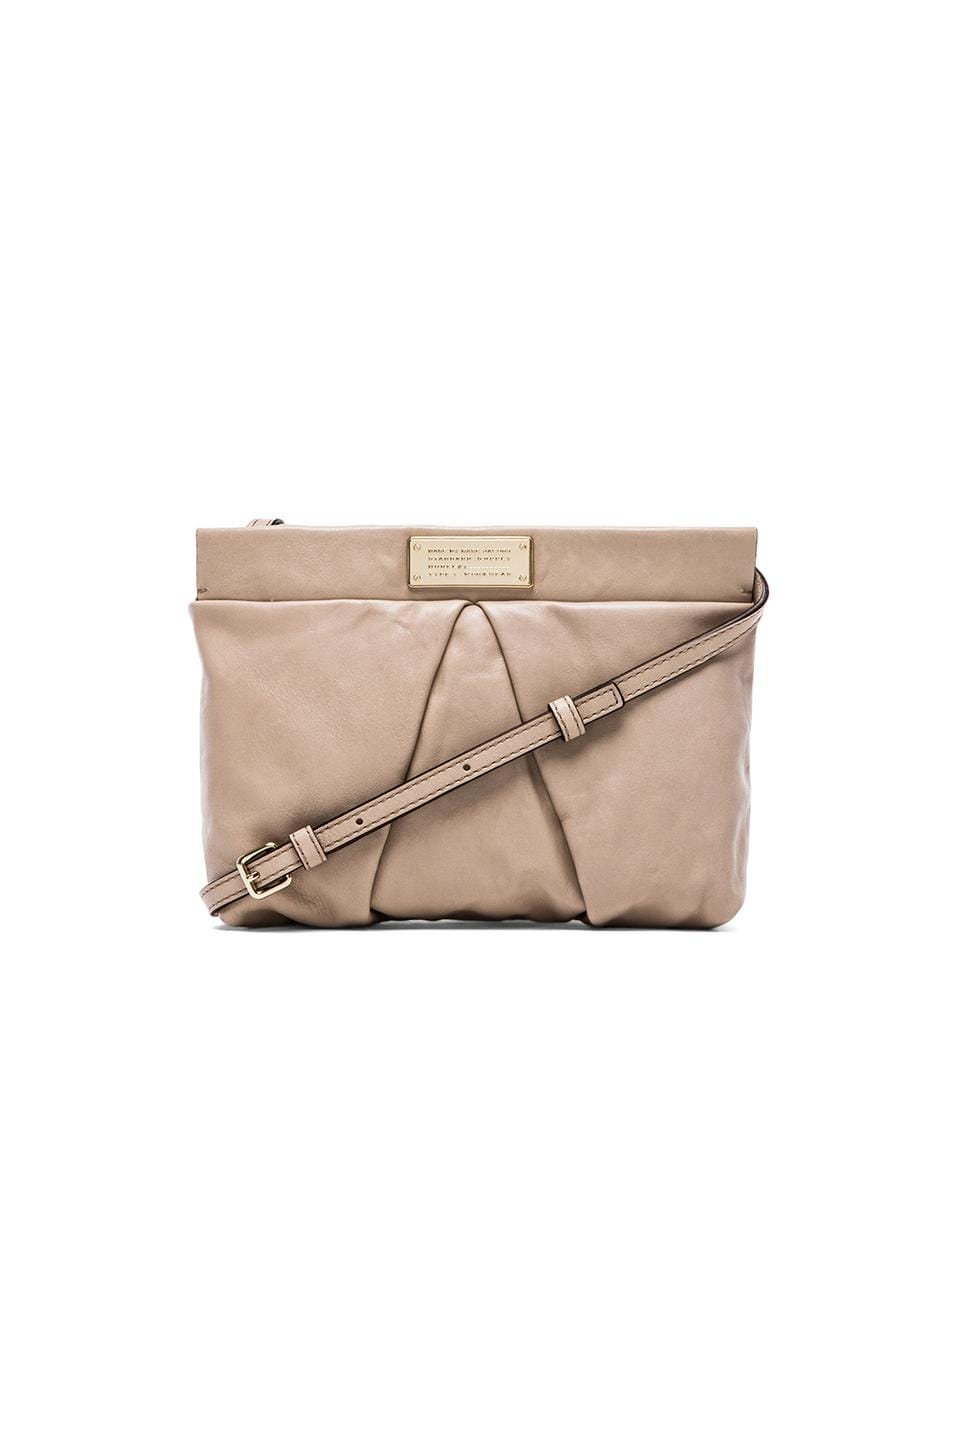 Marc by Marc Jacobs Percy Crossbody in Pale Taupe